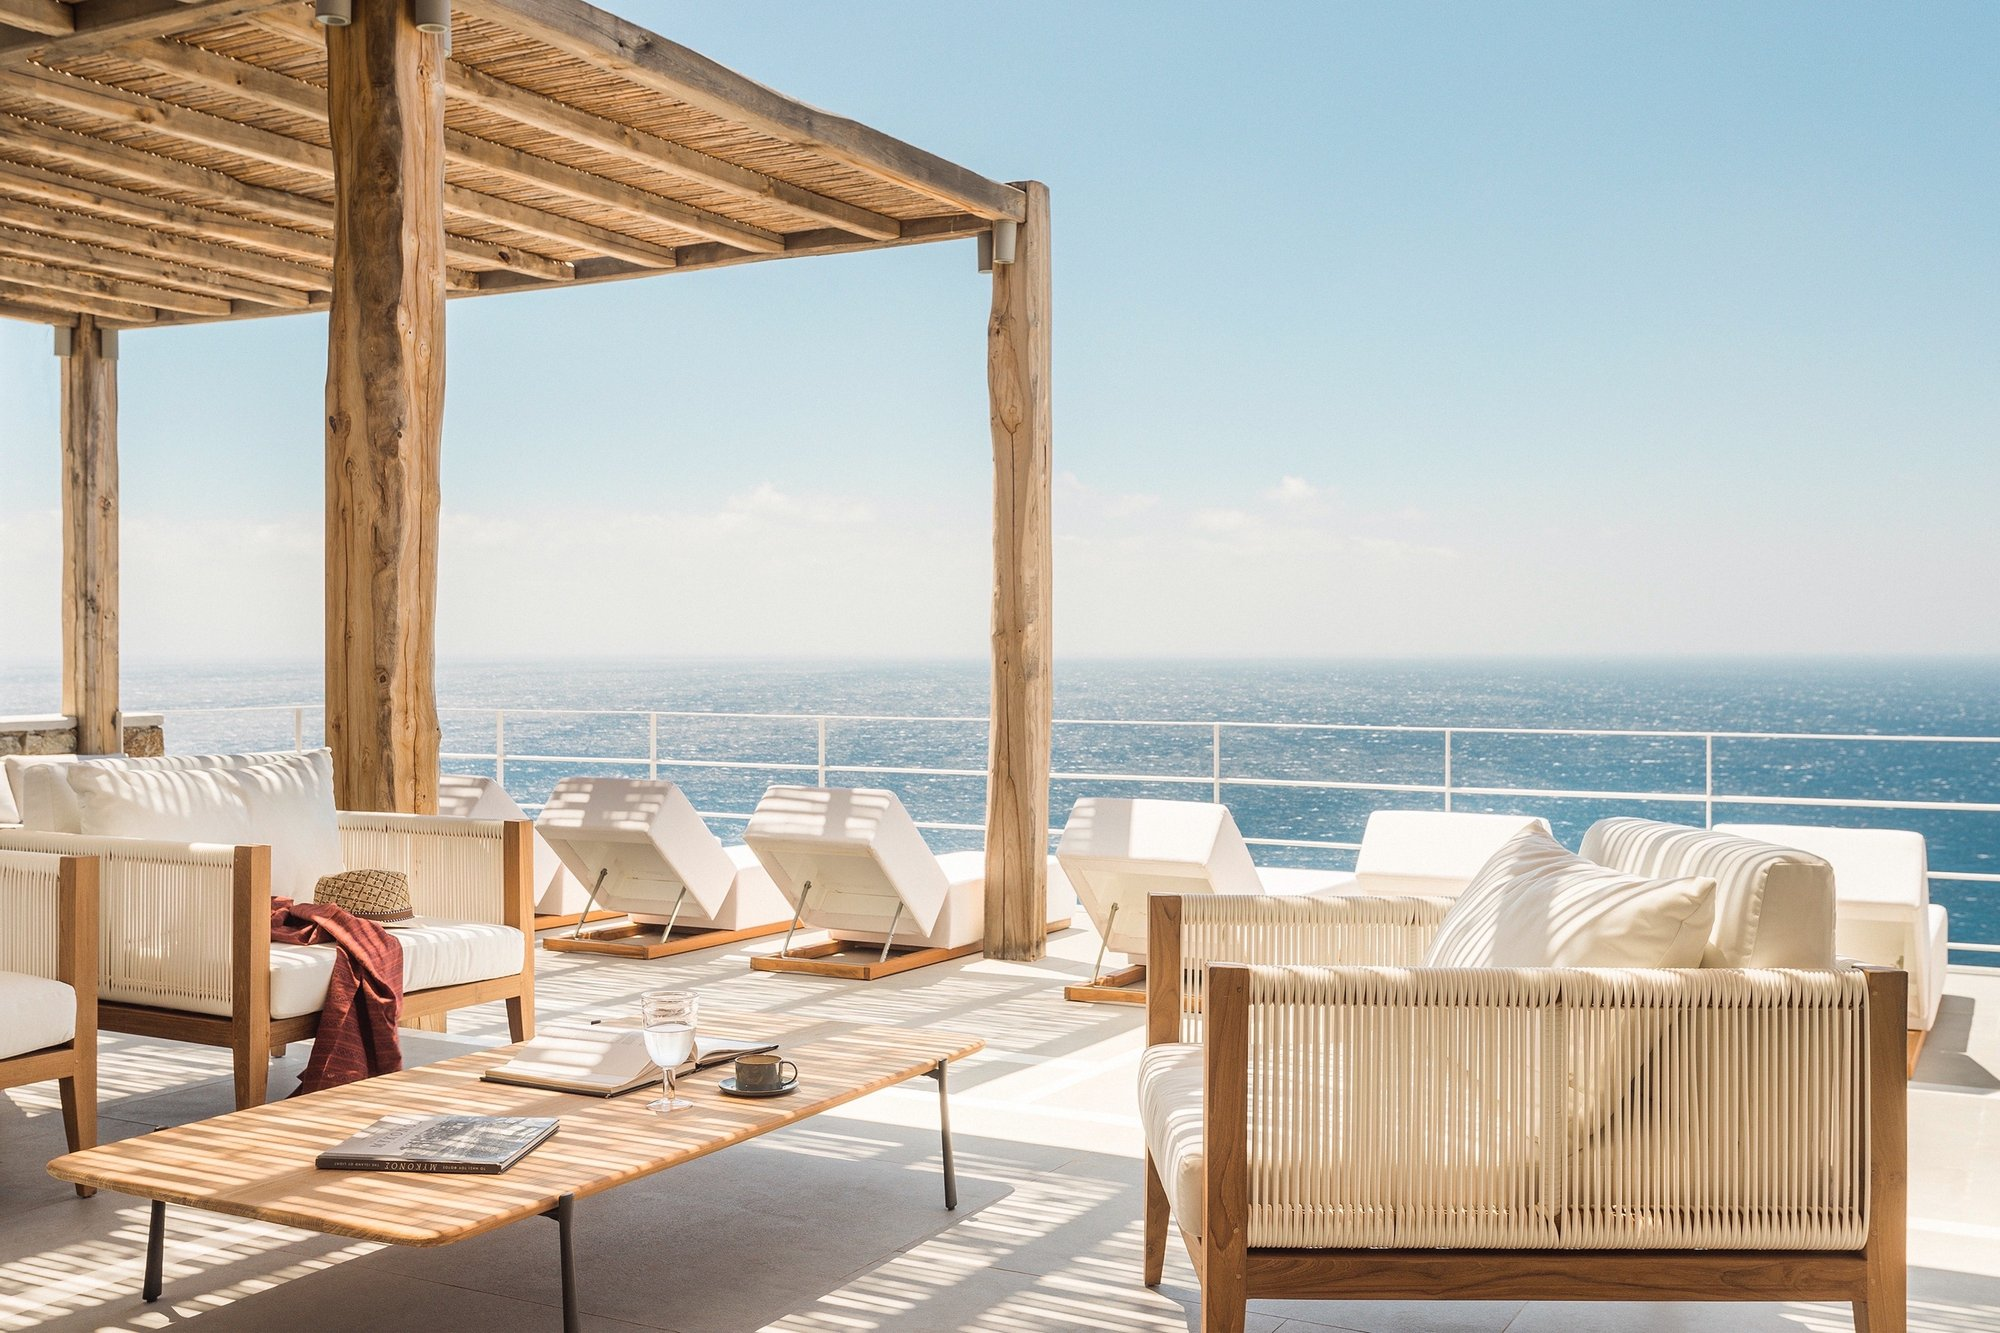 House in Mykonos, Decentralized Administration of the Aegean, Greece 1